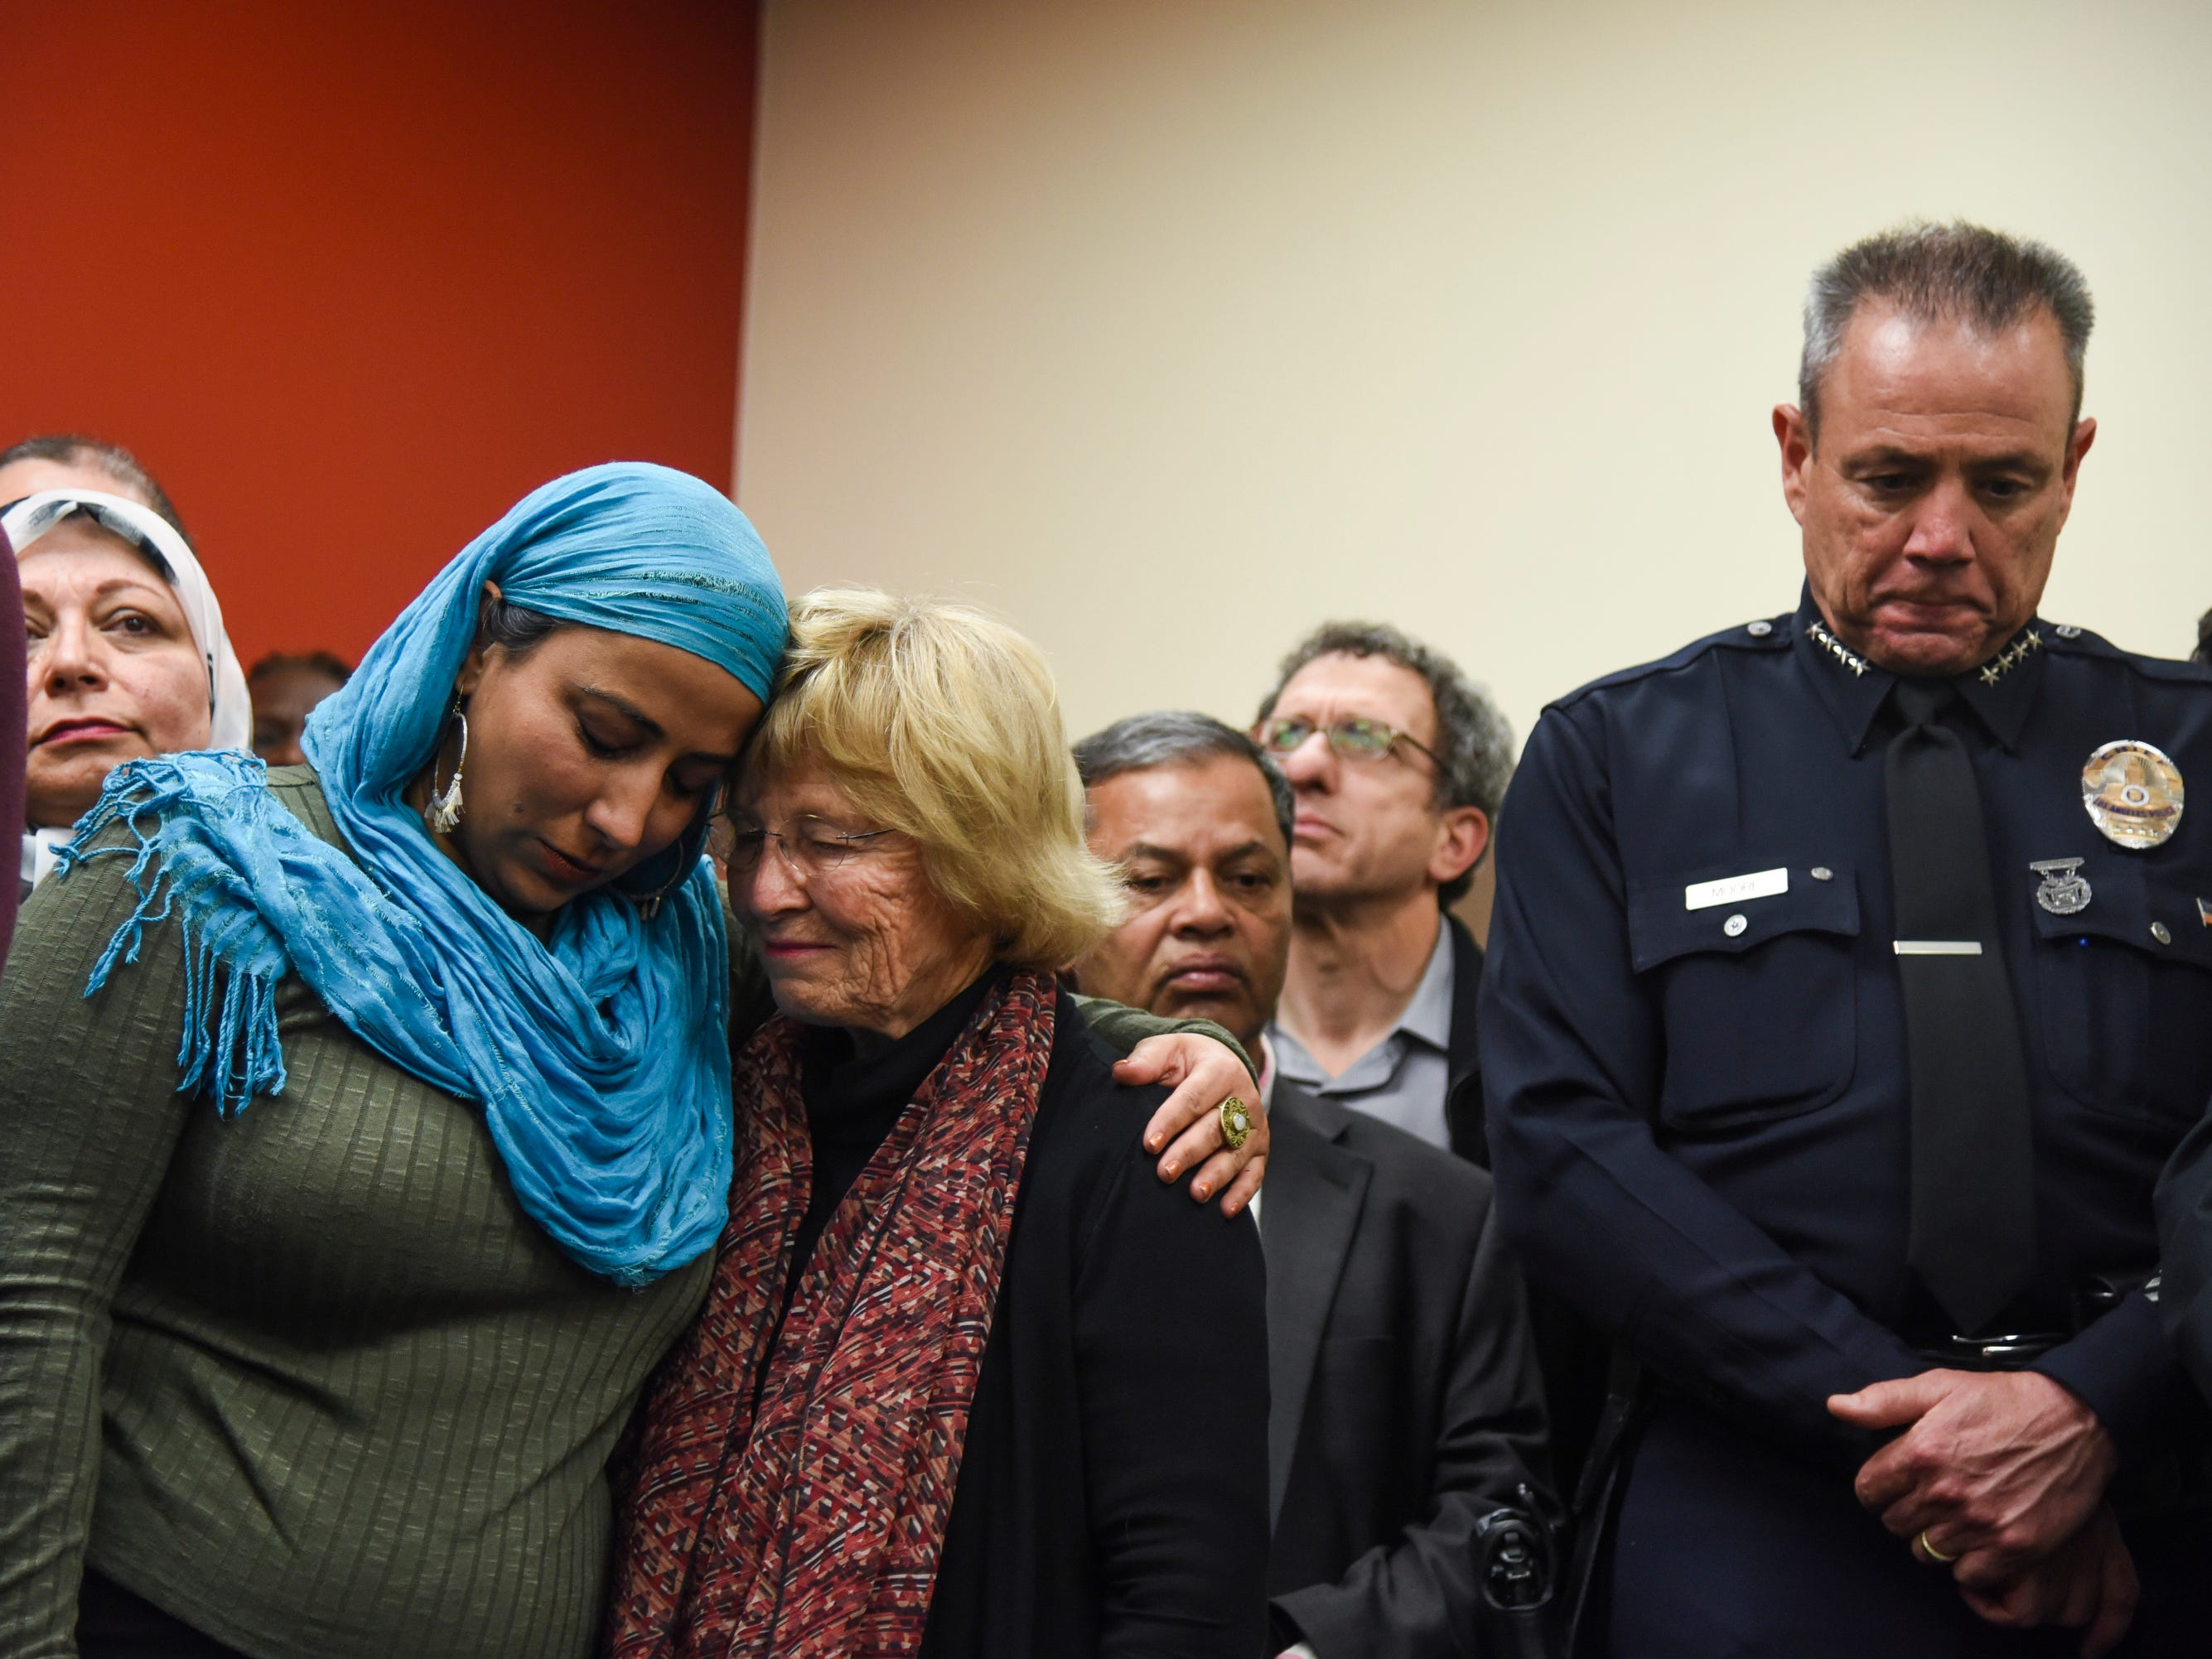 Various community leaders and officers comfort each other during a press conference at the Southern California Islamic Center in Los Angeles, Calif. on March 15, 2019. The press conference was organized after a man opened fire at two Mosques in New Zealand, killing 49 and wounding many more.